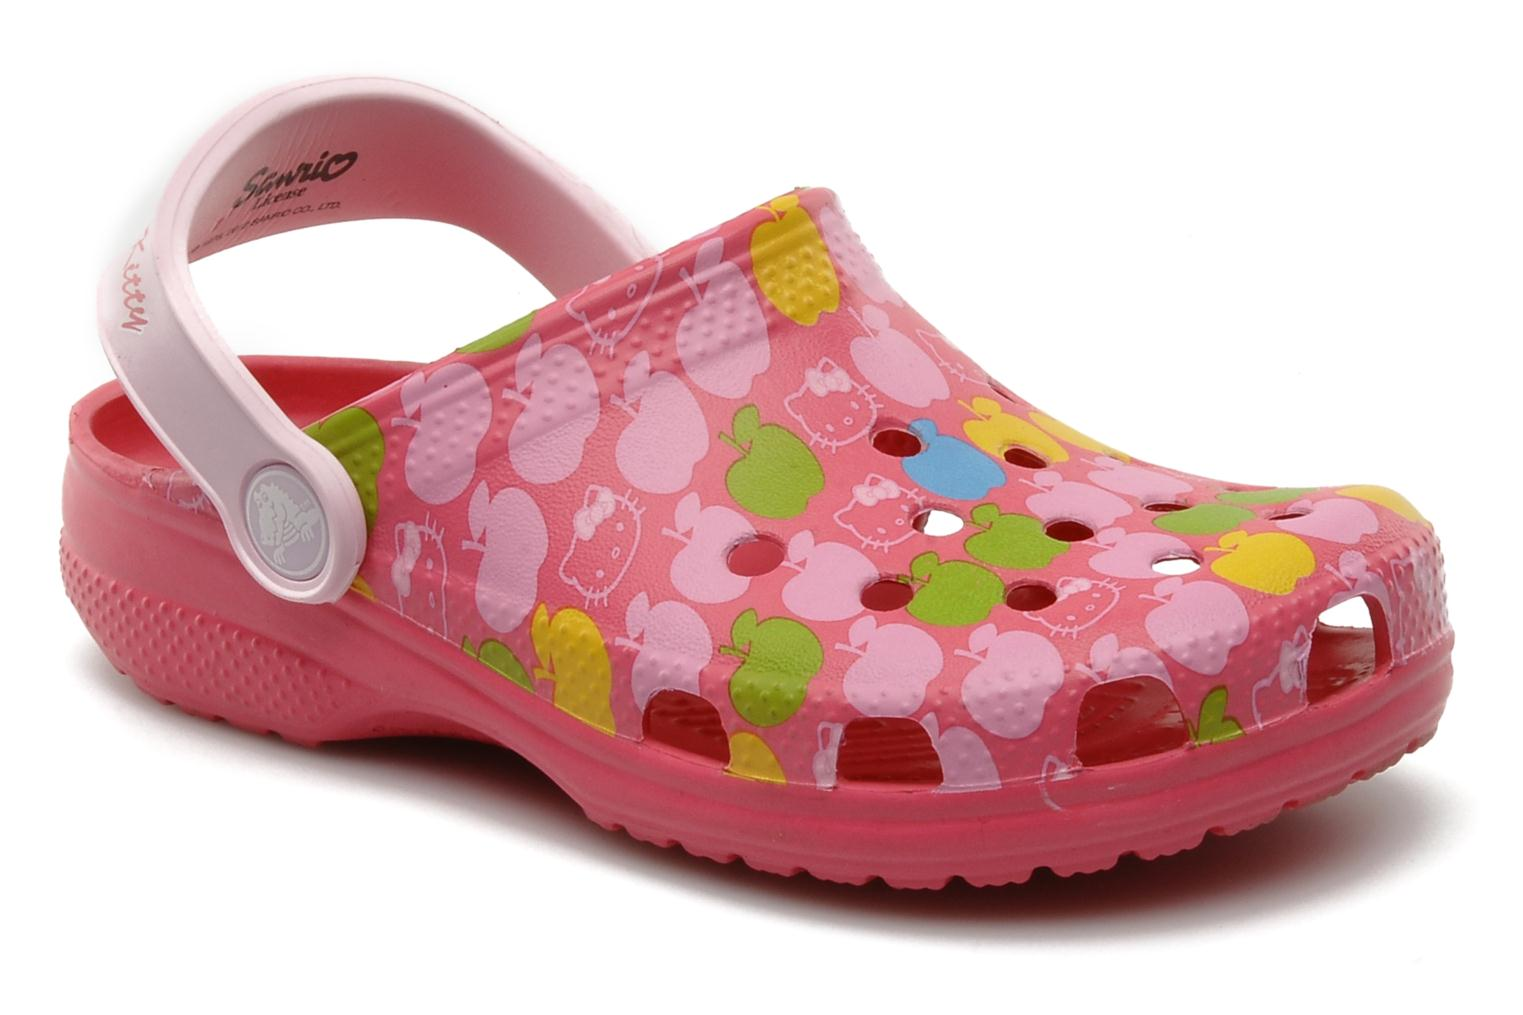 Crocs Classic Kids Hello Kitty Apples Eu Sandals in Pink at Sarenza co uk (90